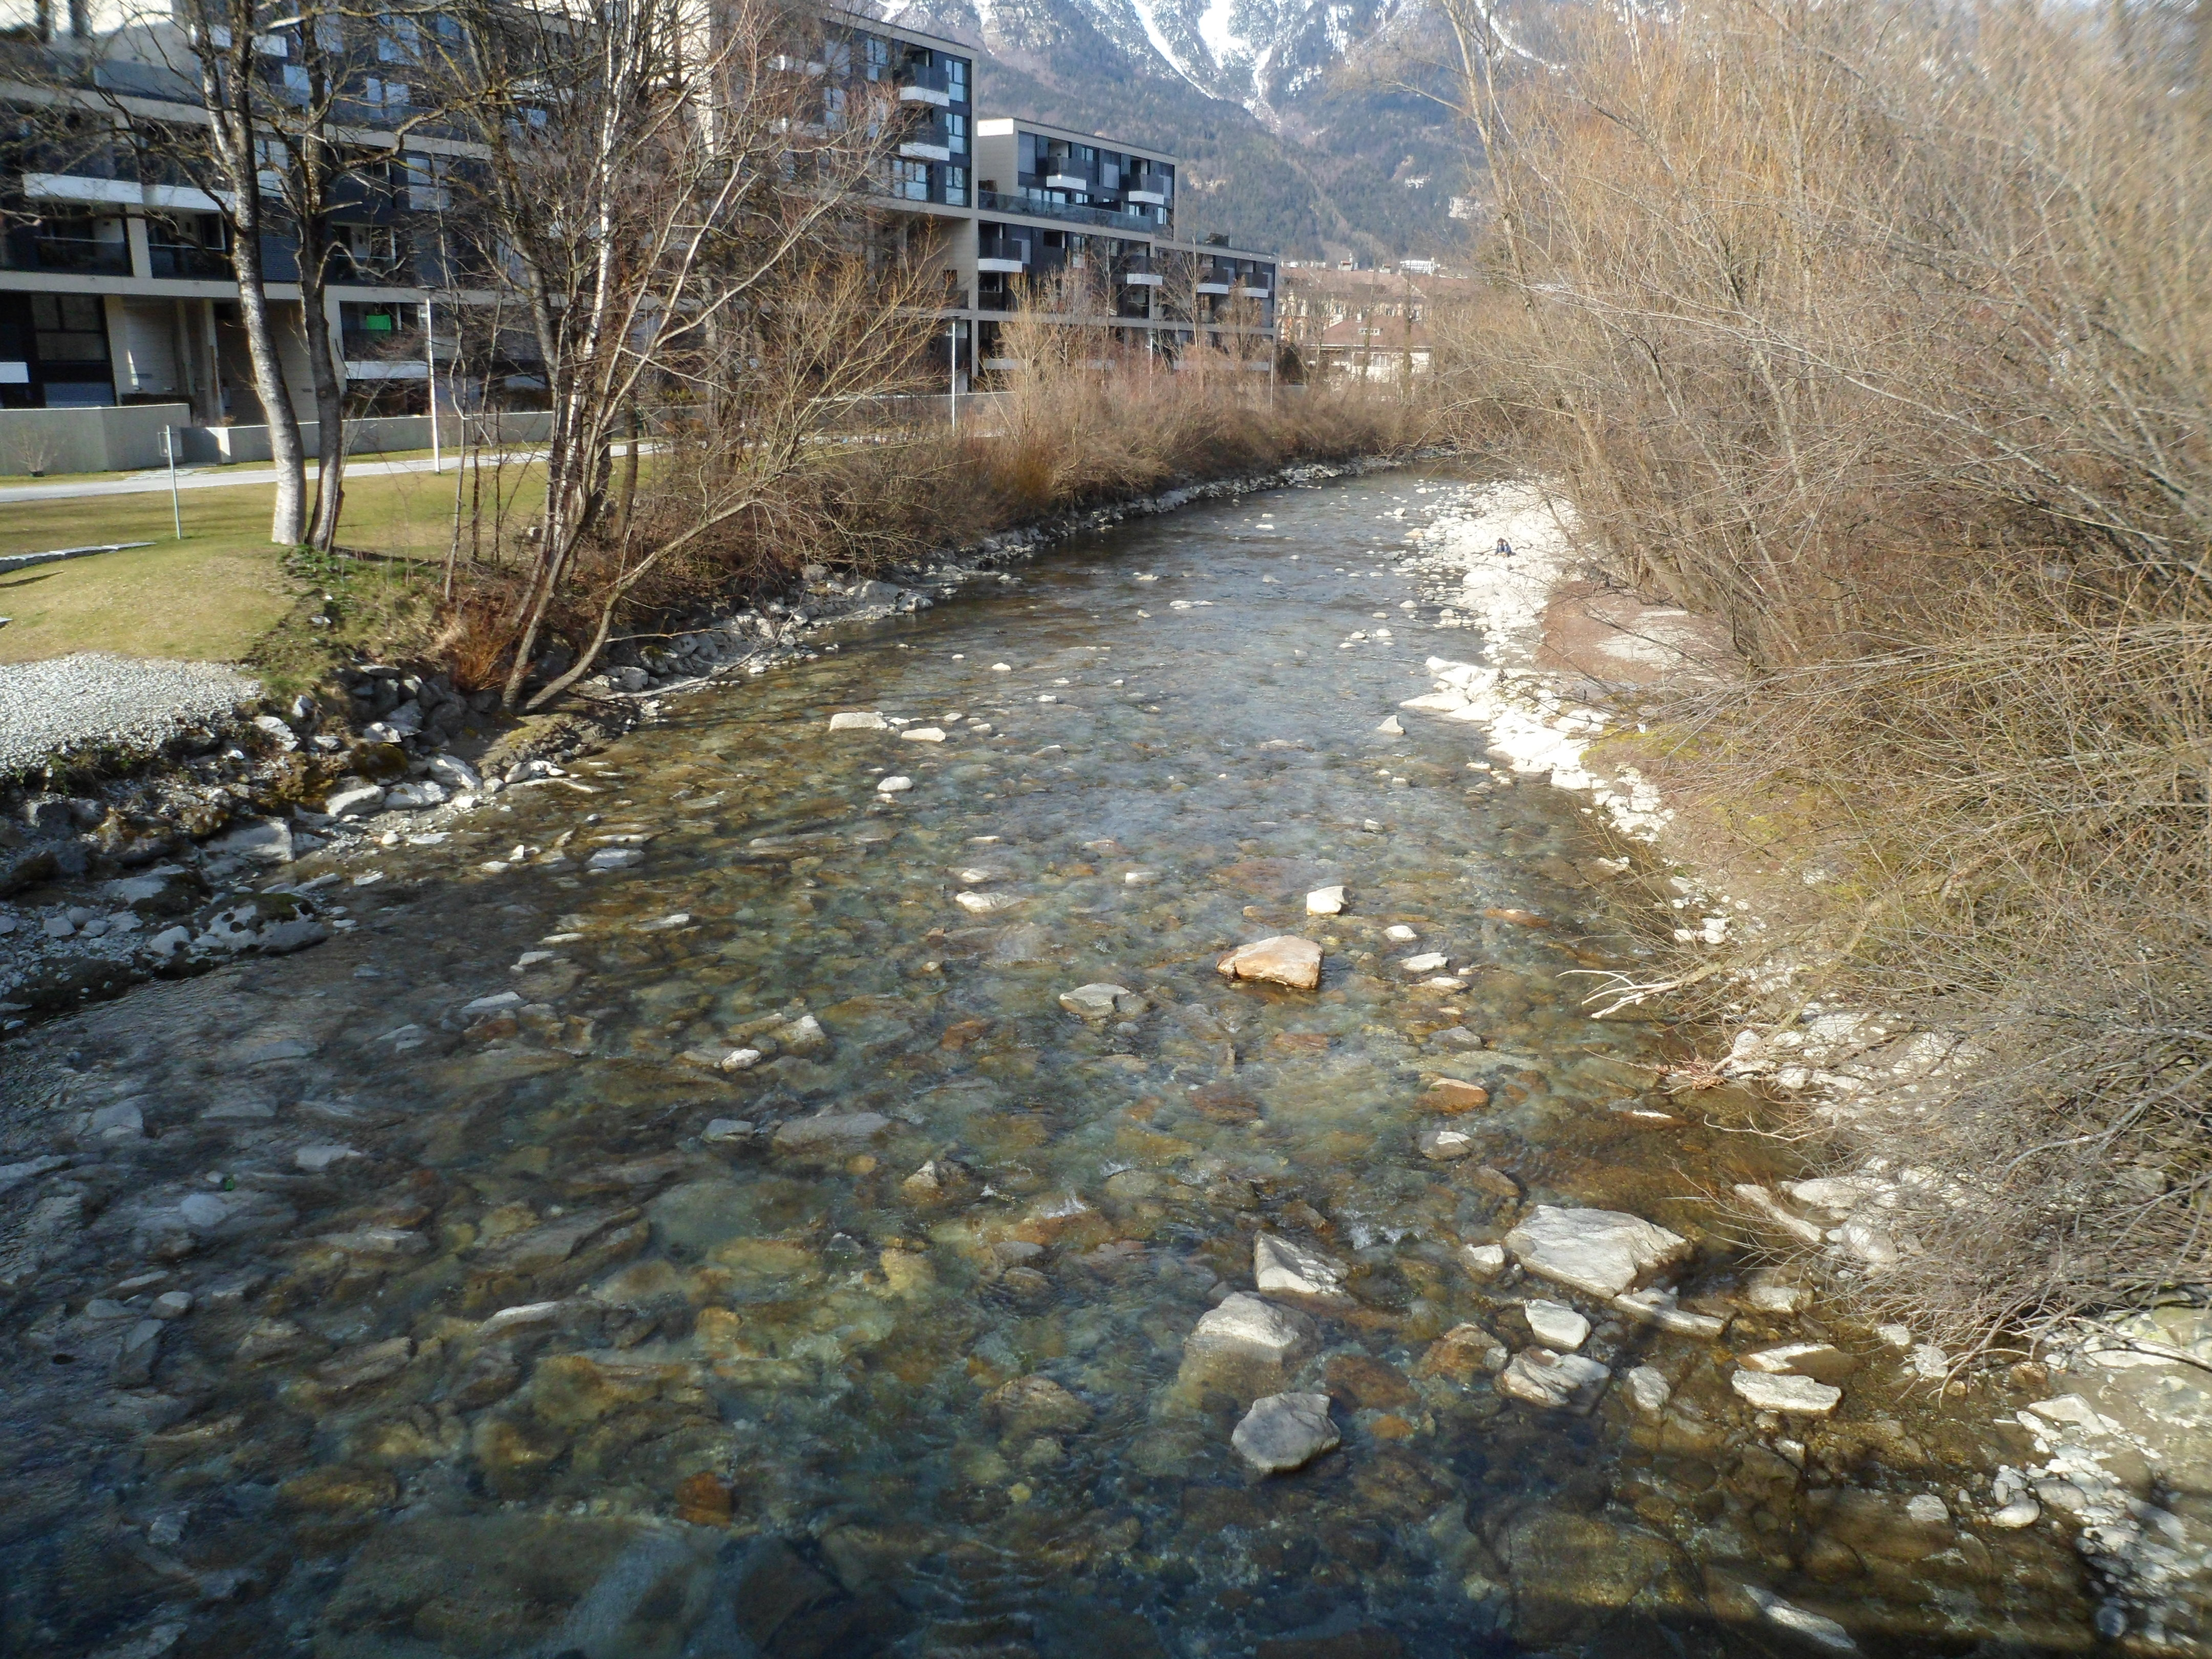 A crystal-clear river with broad stretches of gravel and some hibernating trees on either bank and a blocky glass building in the background.